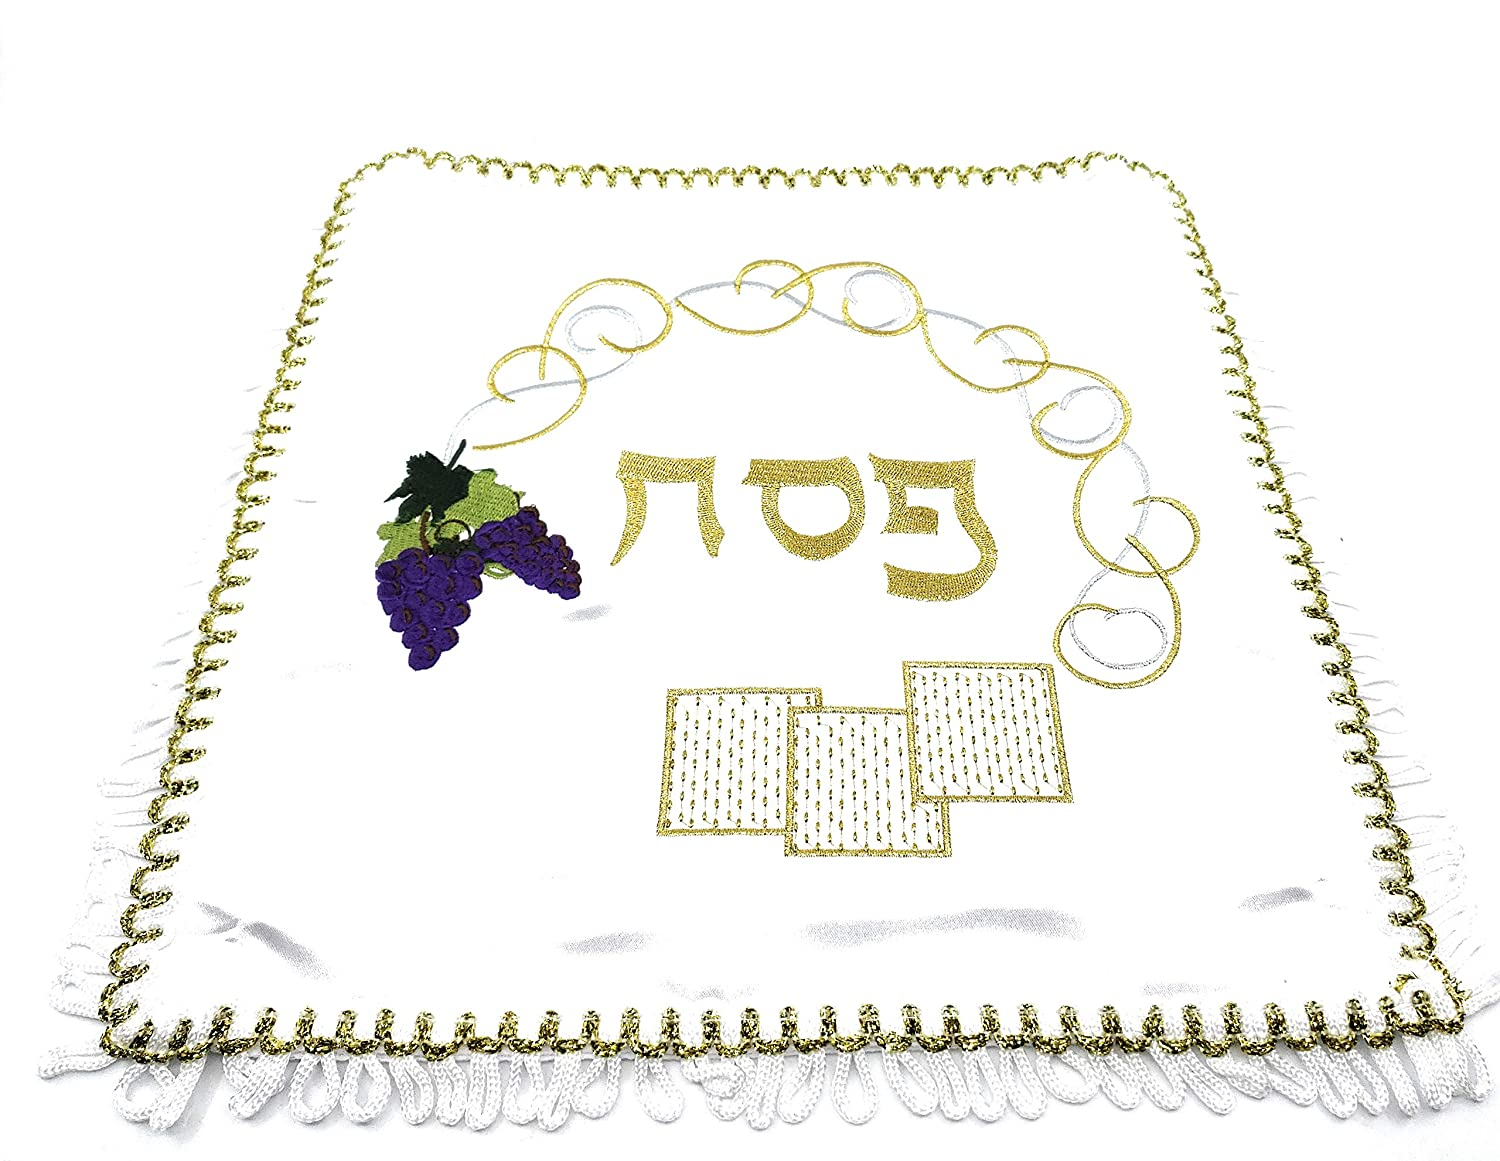 Passover Seder 3 Pc Bundle Contains Embroidered Matza Cover Matching Afikoman Bag and Embroidered Hand Towel Grapes Design